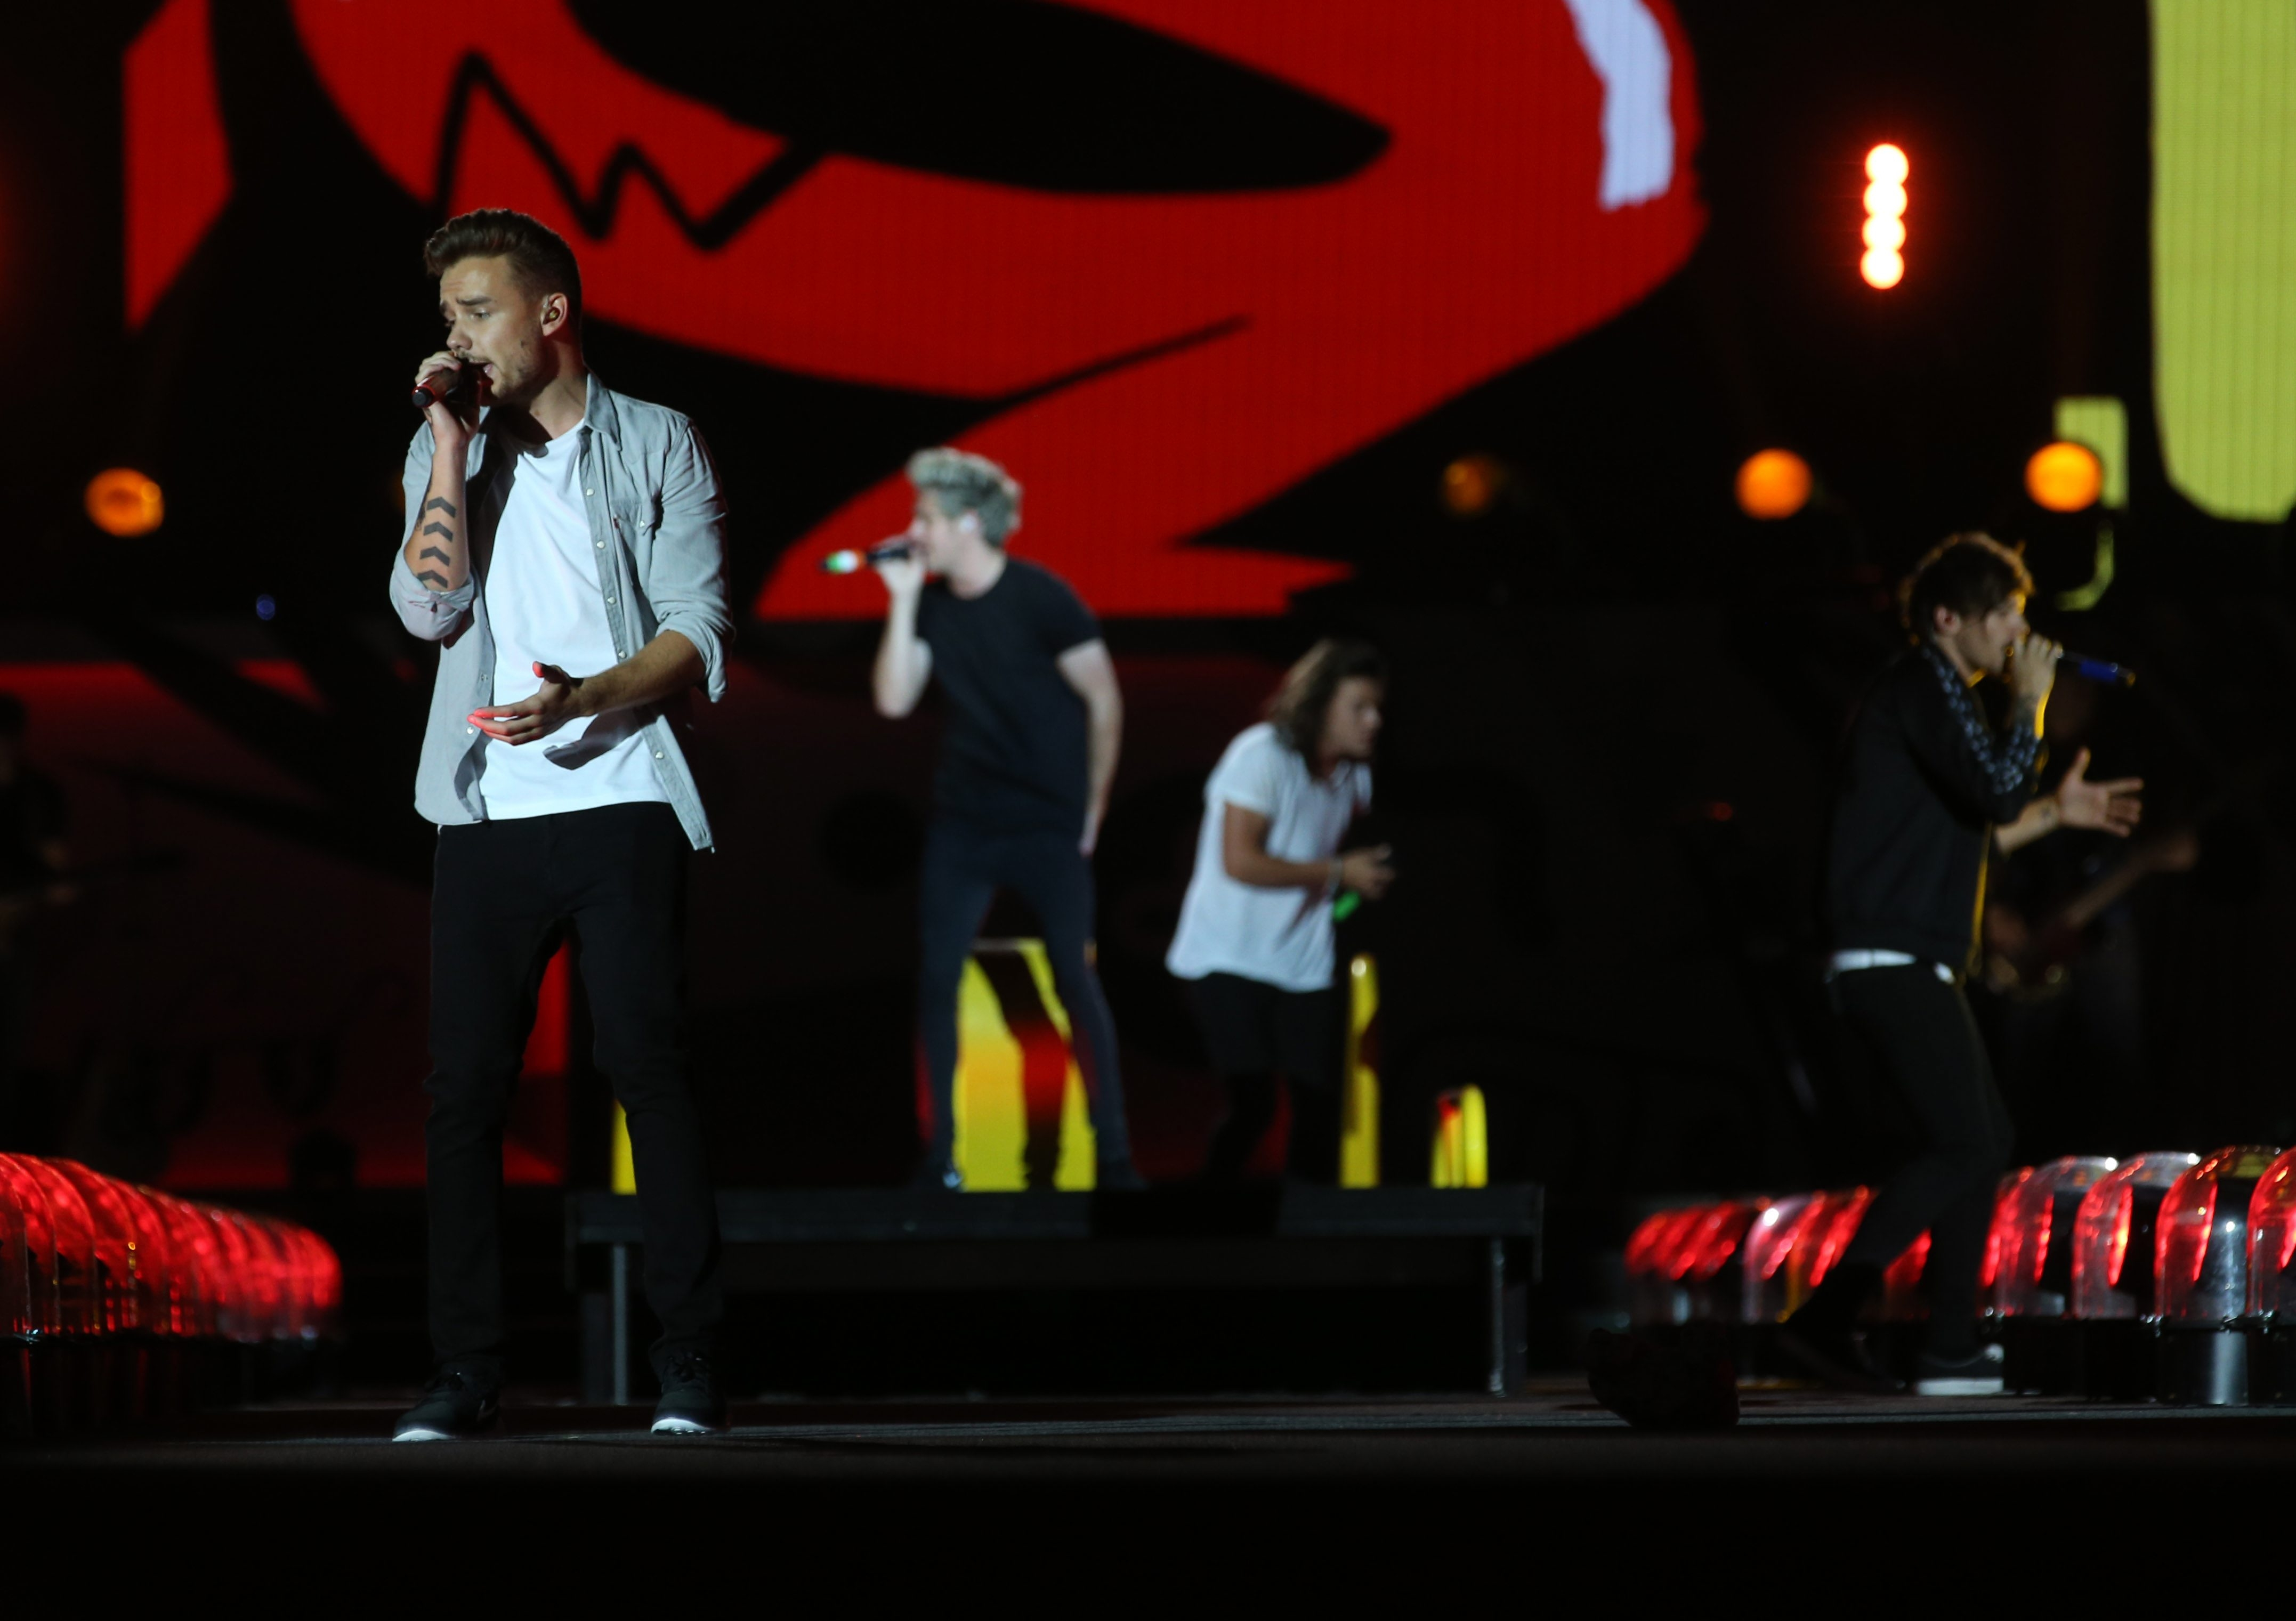 One Direction performs at Ralph Wilson Stadium in Orchard Park. (Sharon Cantillon/Buffalo News)